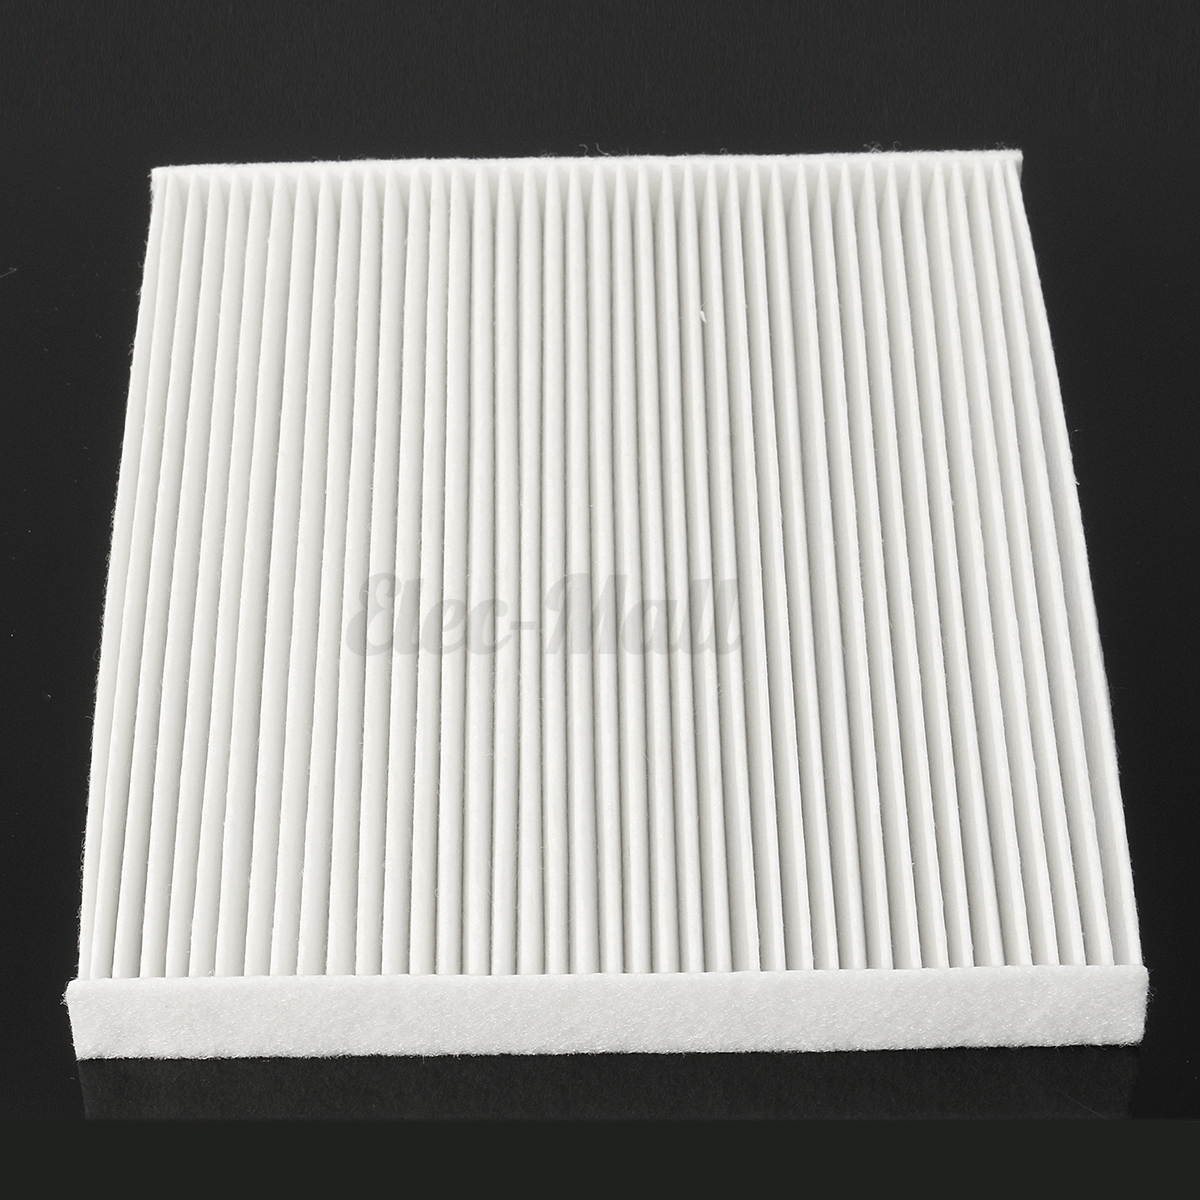 how to clean car ac filter